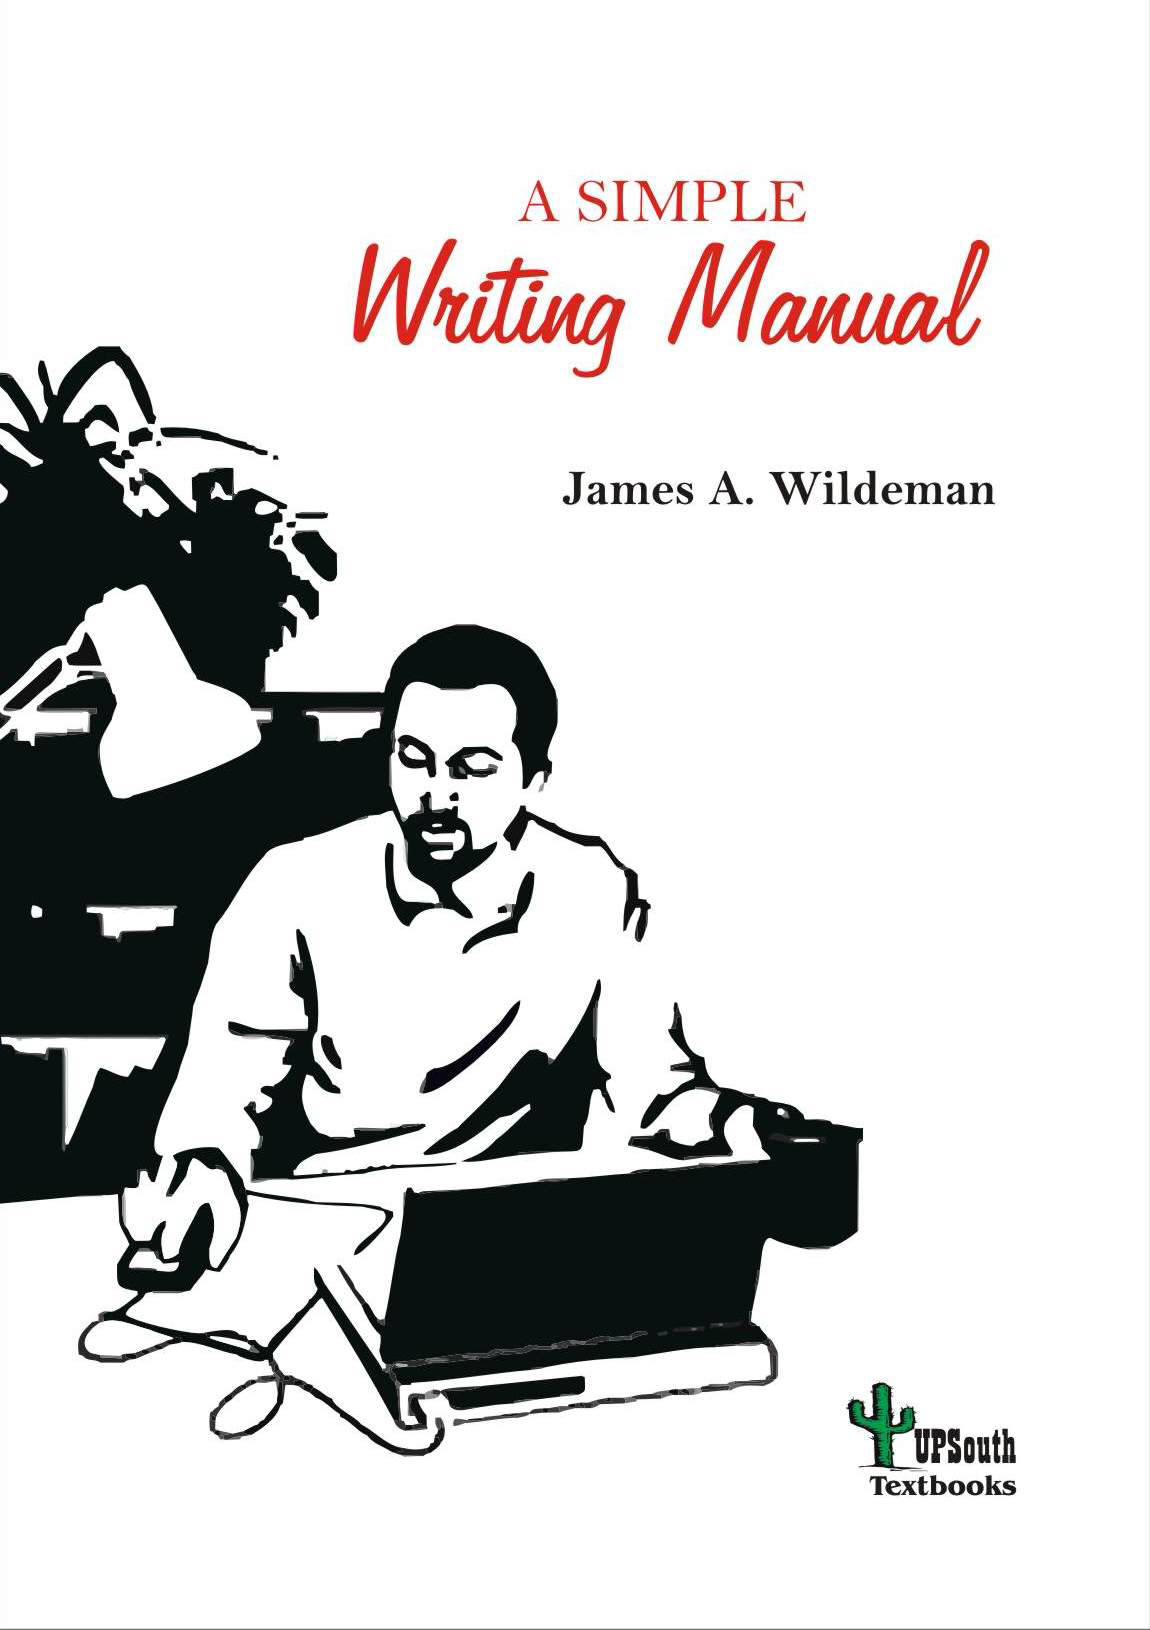 A Simple Writing Manual.